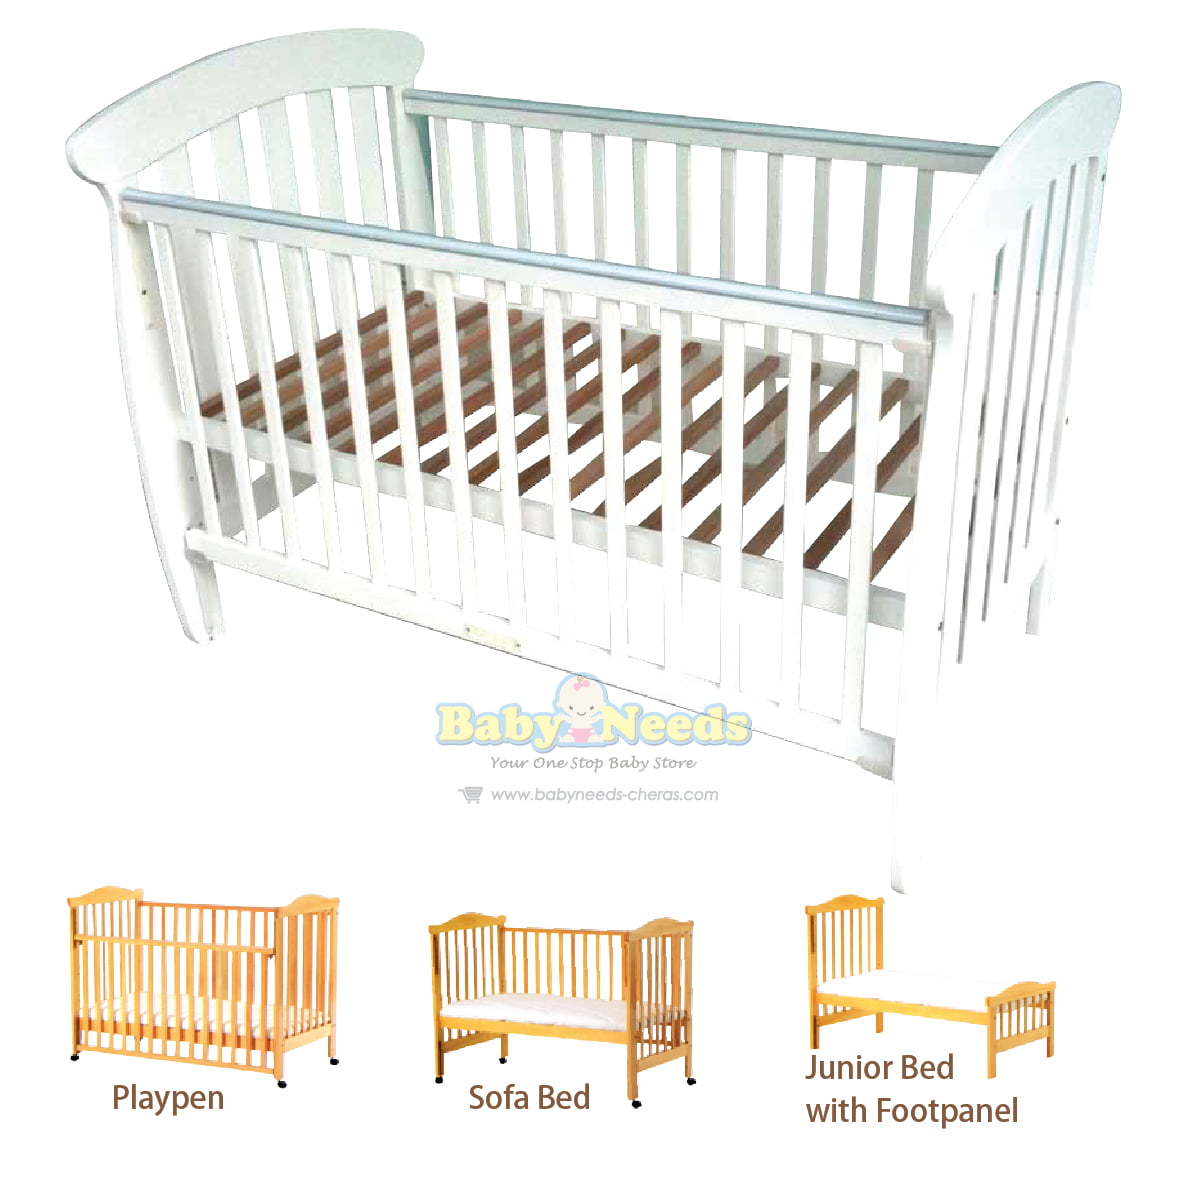 Baby bed online malaysia - Babylove Baby Cot 4 In 1 Convertible 28 X 52 Package Baby Needs Online Store Malaysia